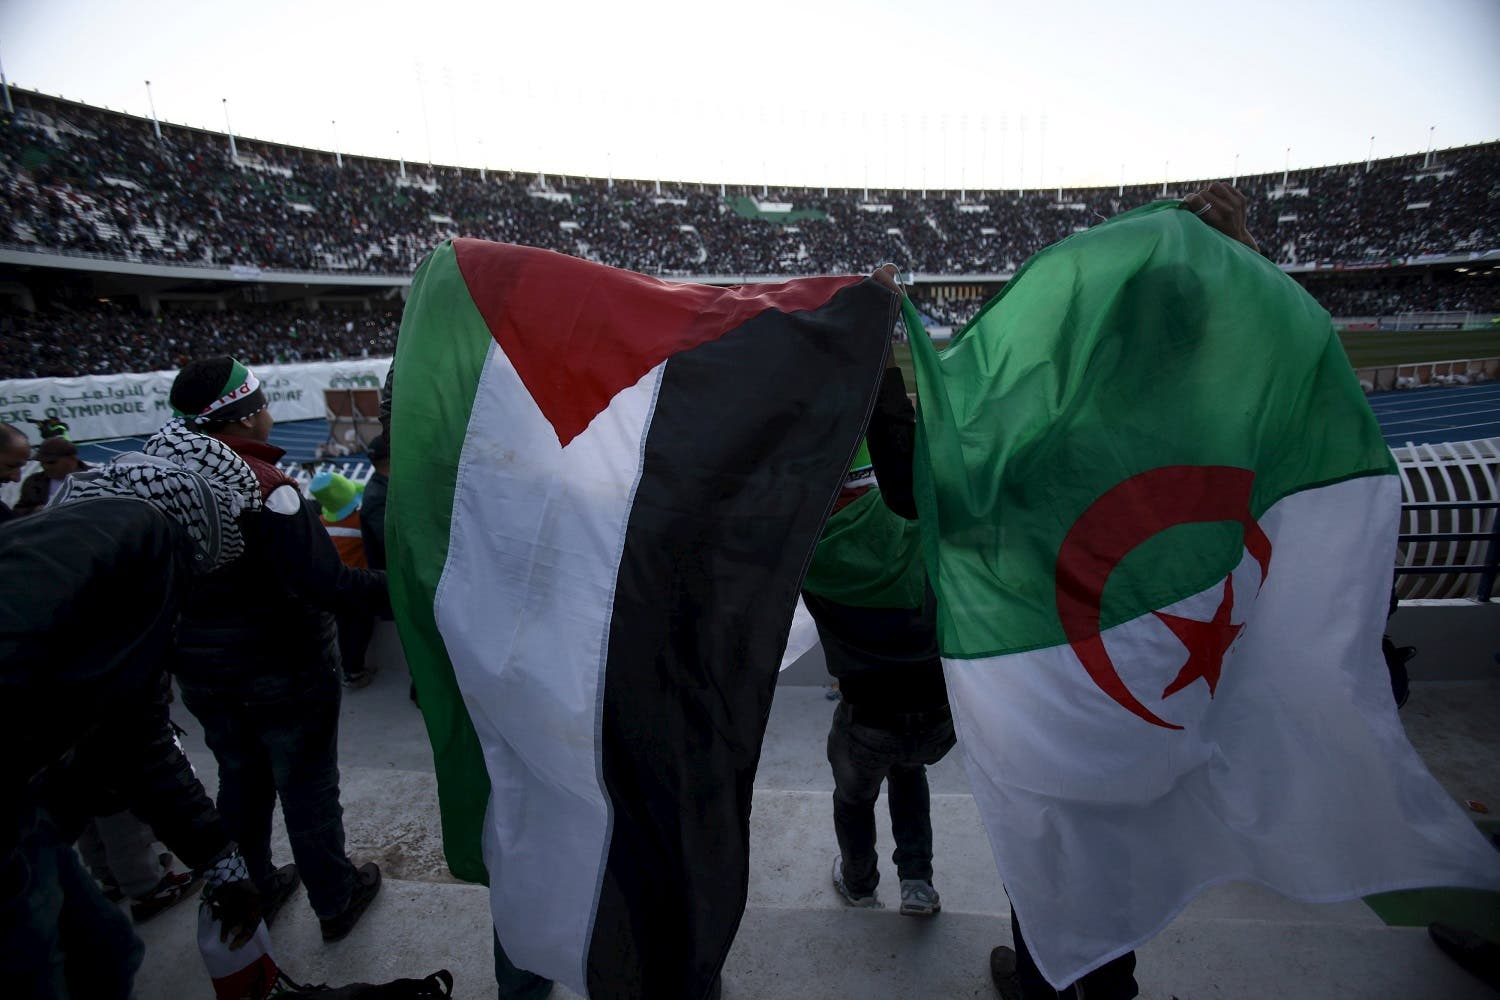 Algerian and Palestinian fans react during a friendly soccer match between the Palestinian and Algerian Olympic football teams at the du 5 Juillet 1962 stadium in Algiers. (Reuters)